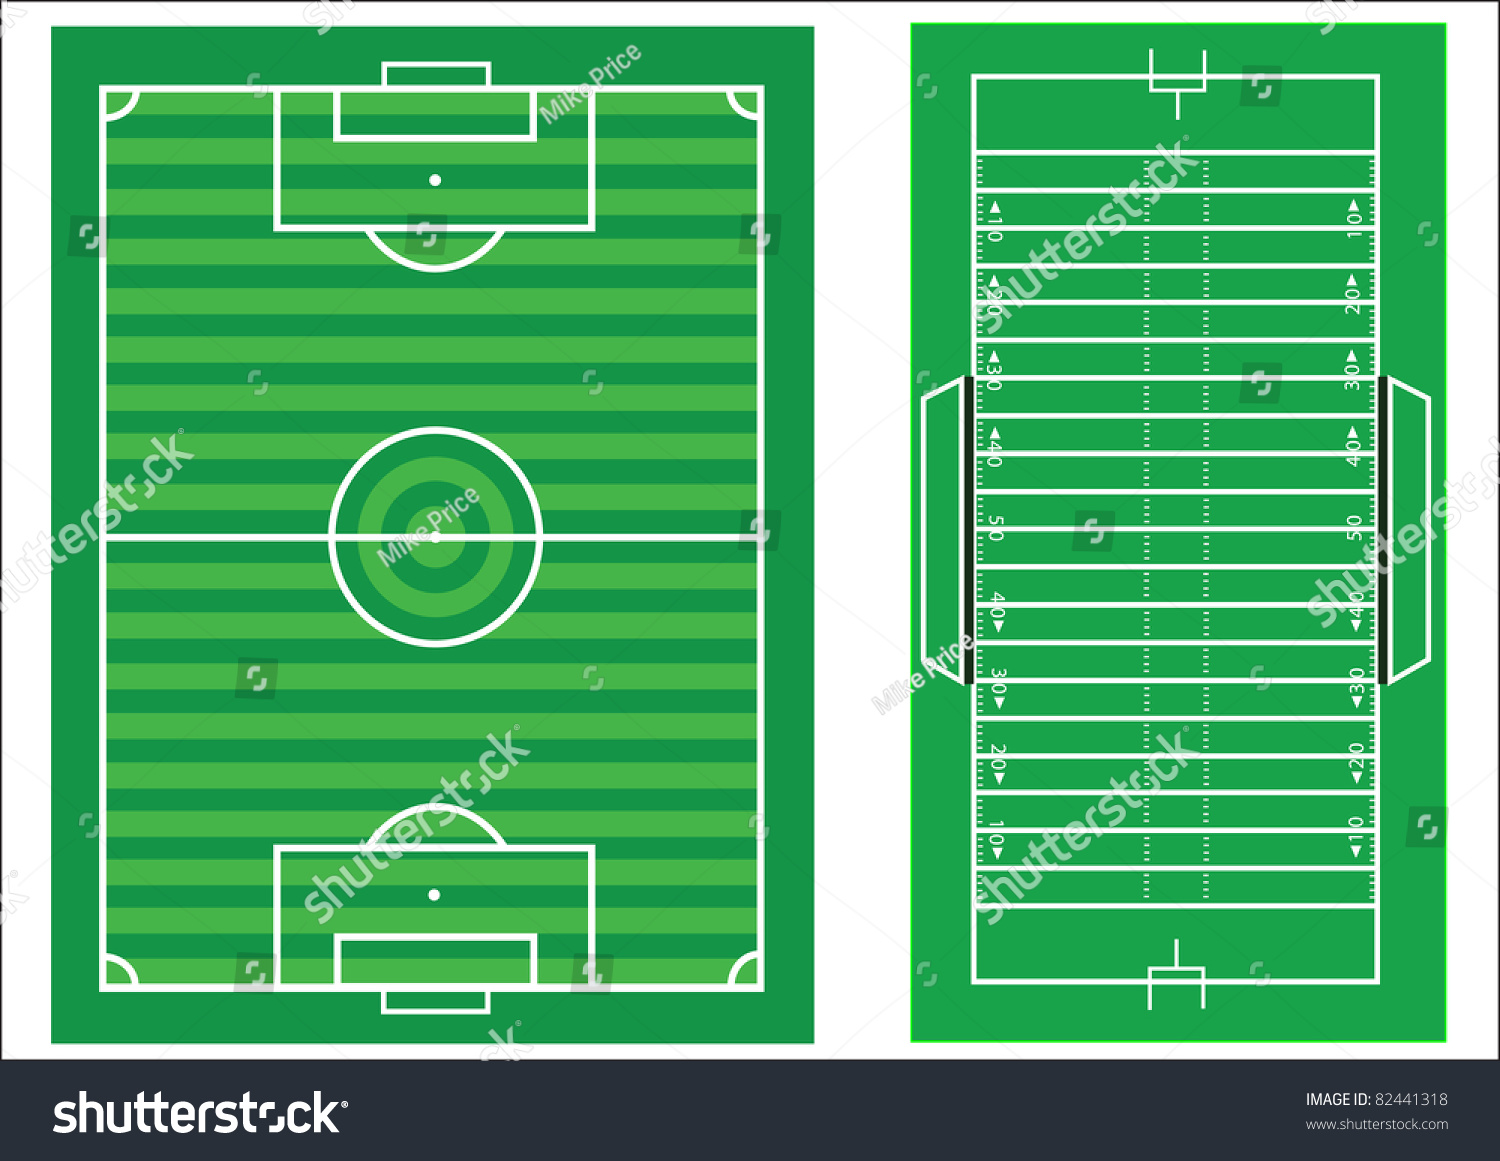 Scale Diagrams Soccer Pitch American Football Stock